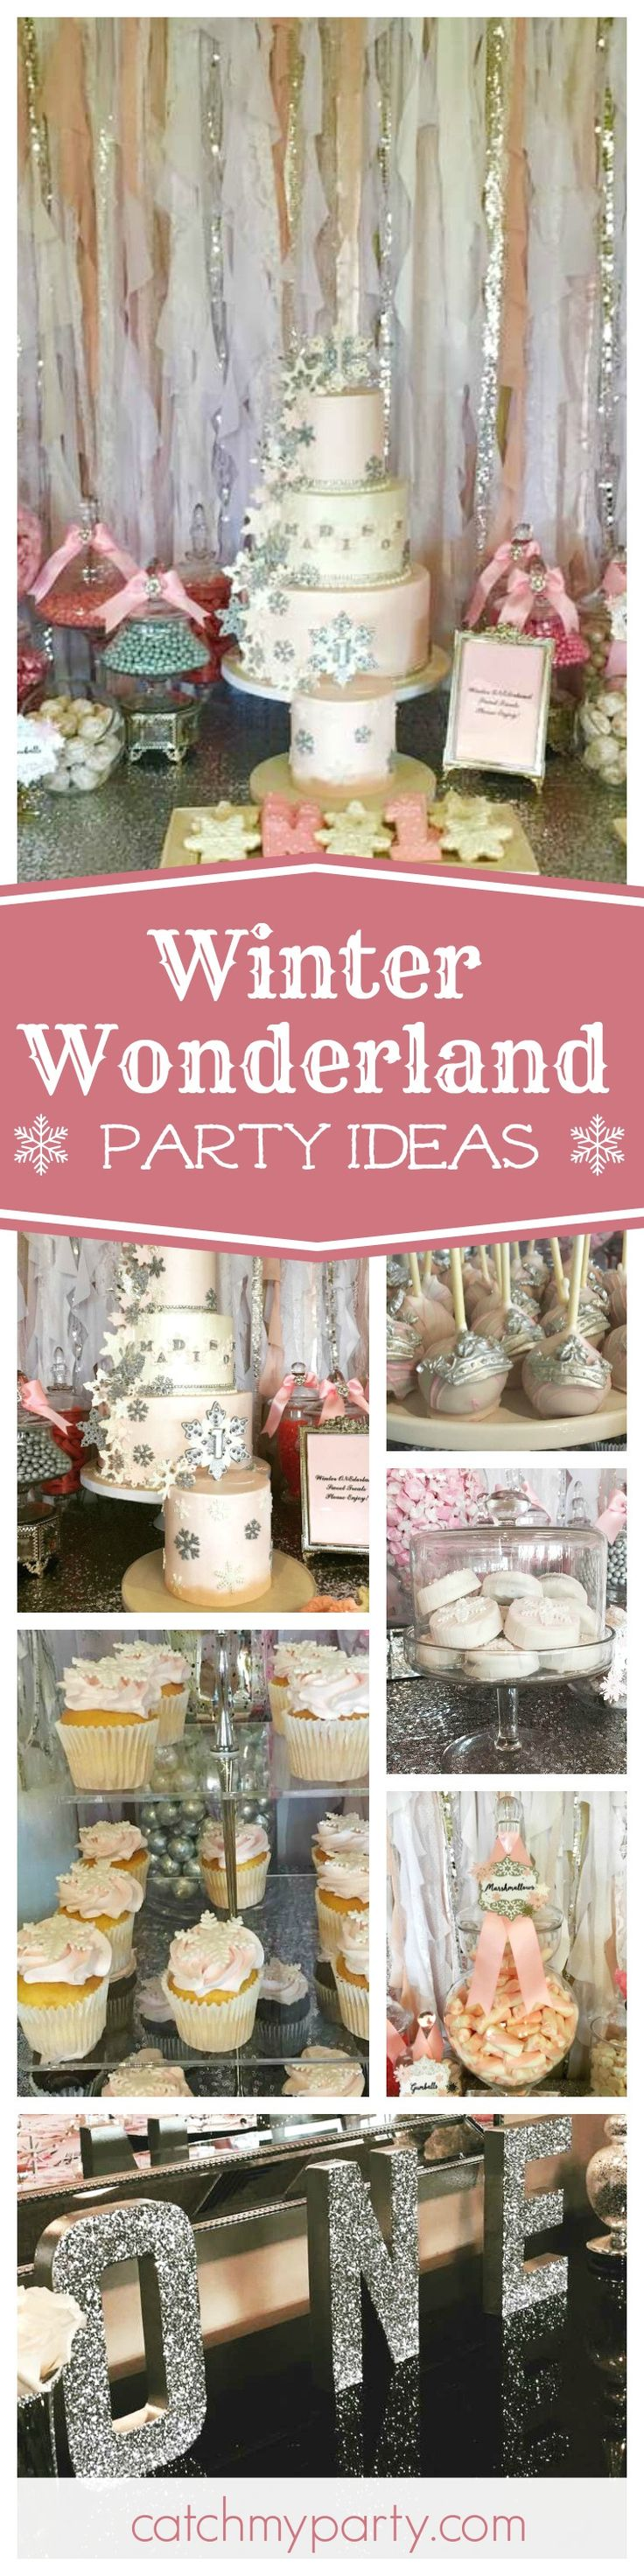 Don't miss this gorgeous Winter Onderland 1st birthday party. The pink and white 3 tier cake covered in snowflakes is just so pretty!! See more party ideas and share yours at CatchMyparty.com